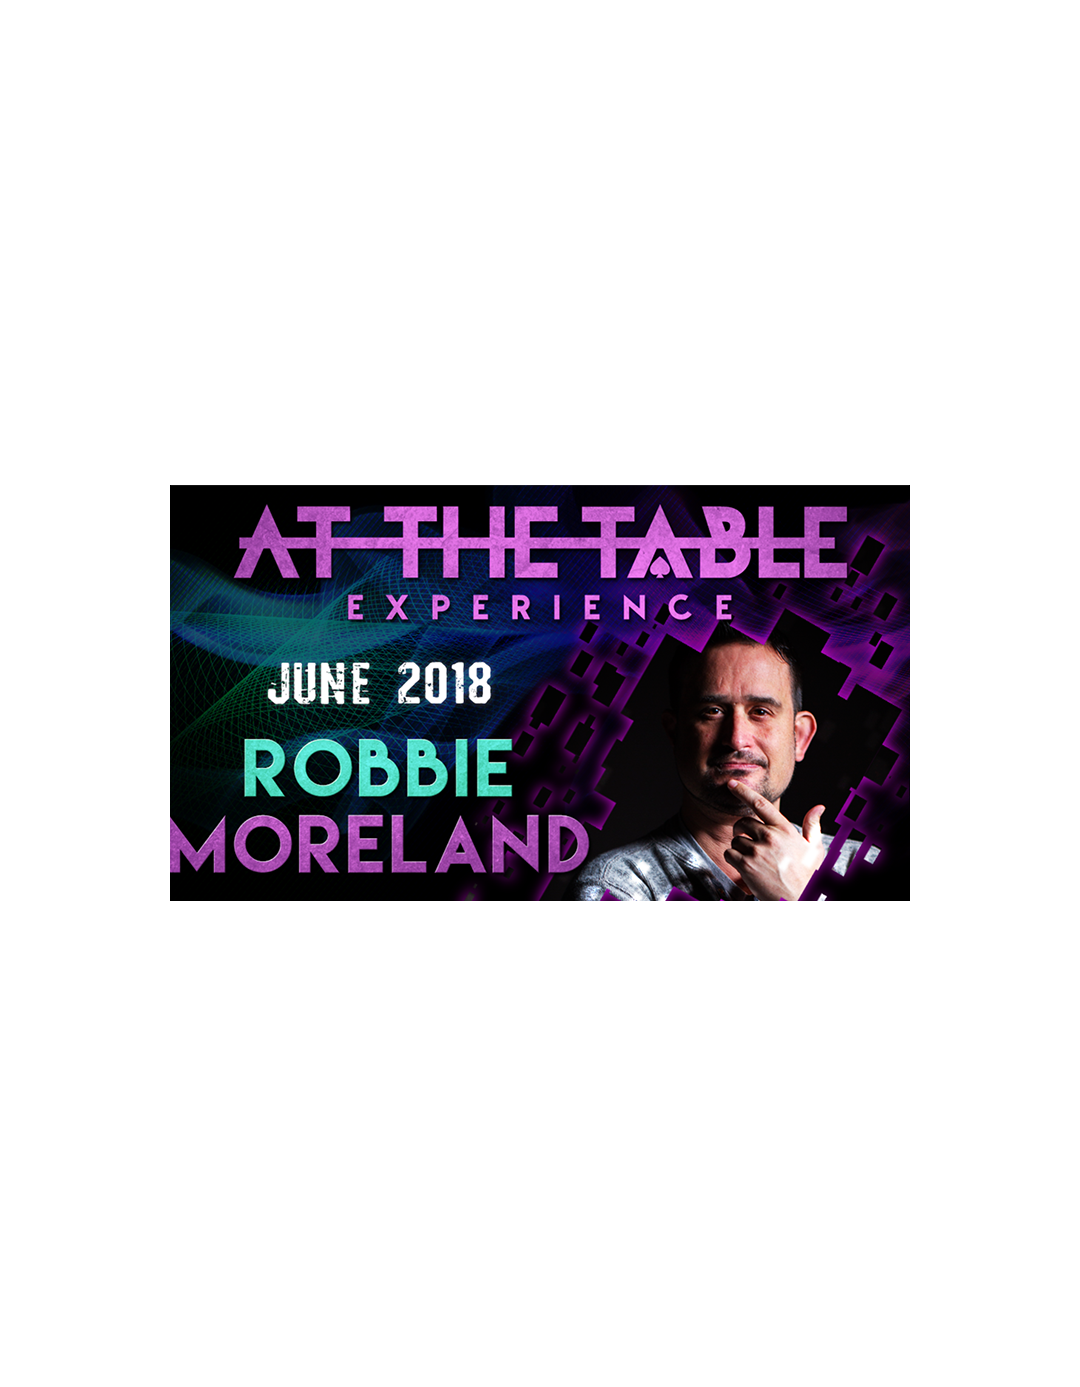 At The Table Live Robbie Moreland 6 iunie 2018 - At the table lecture